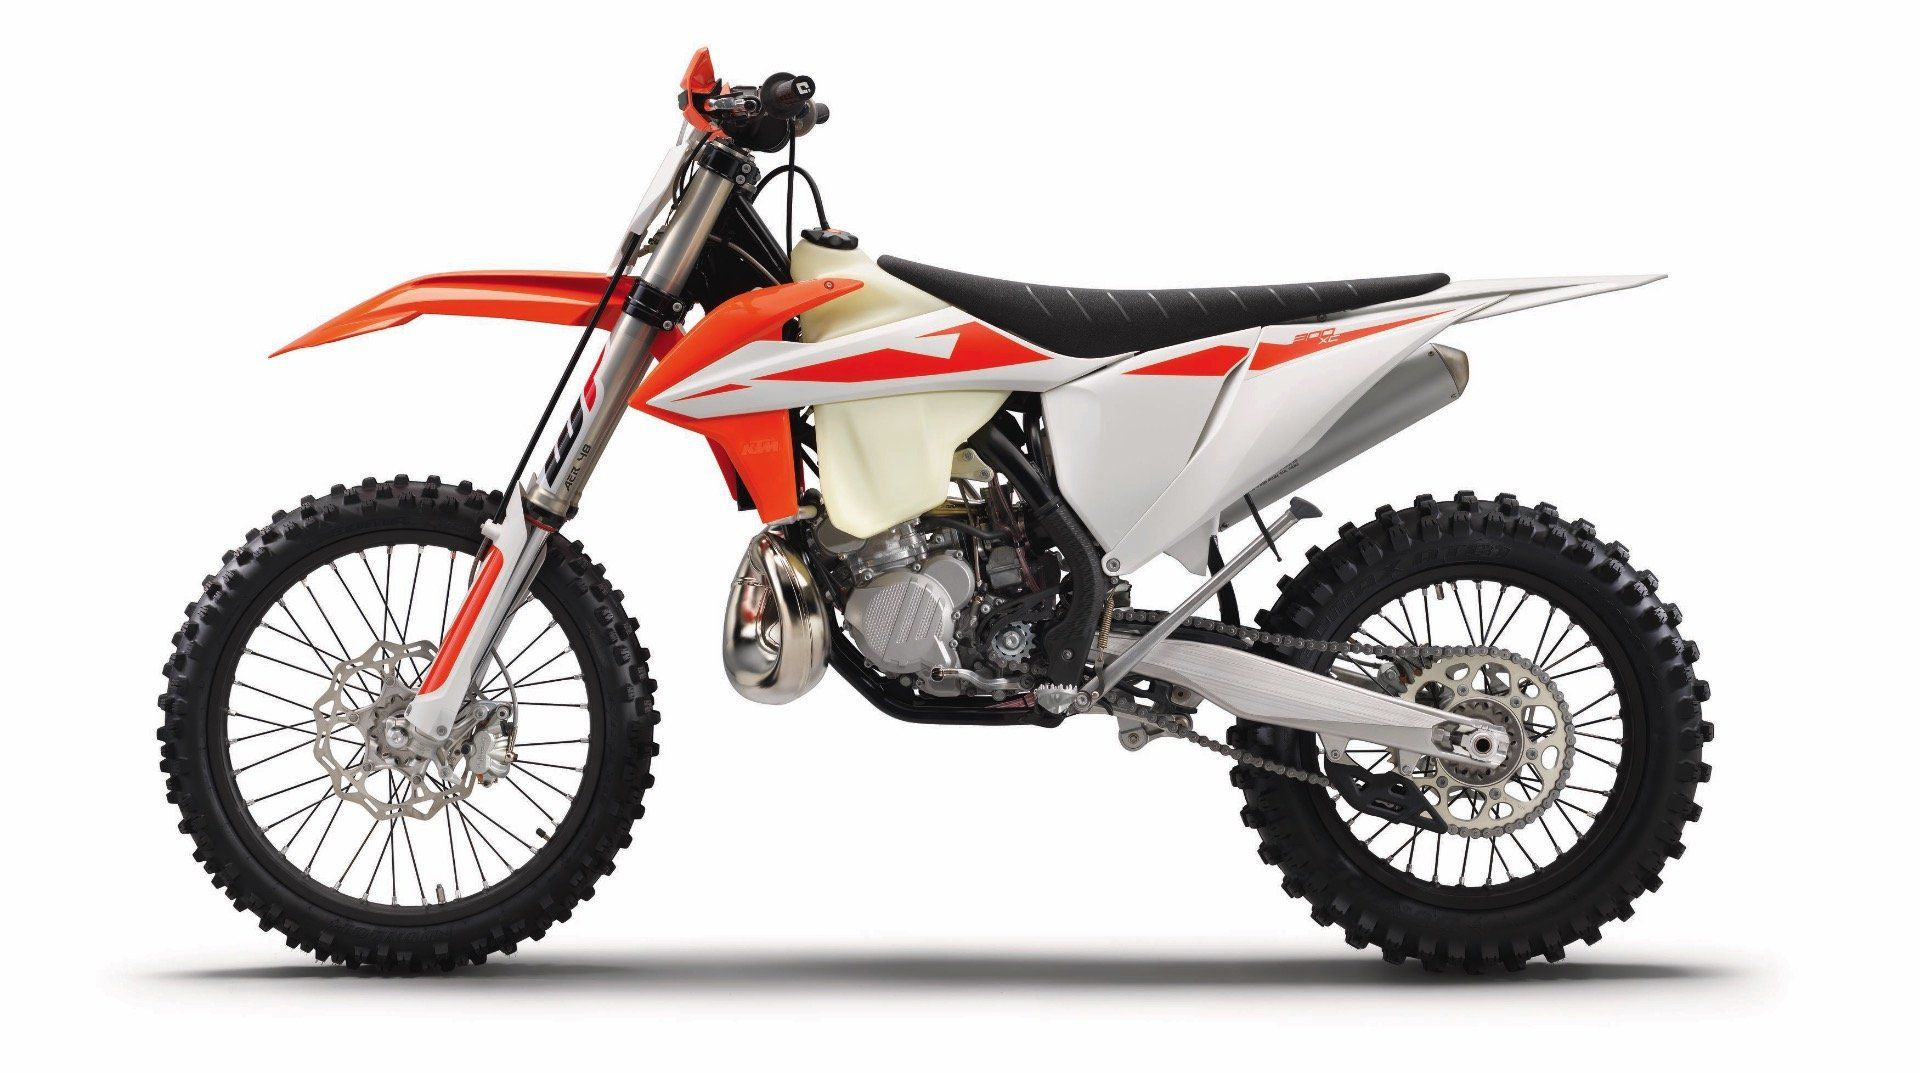 Ktm 300 Xc 2019 Pictures From 2019 Ktm 300 Xc And 250 Xc First